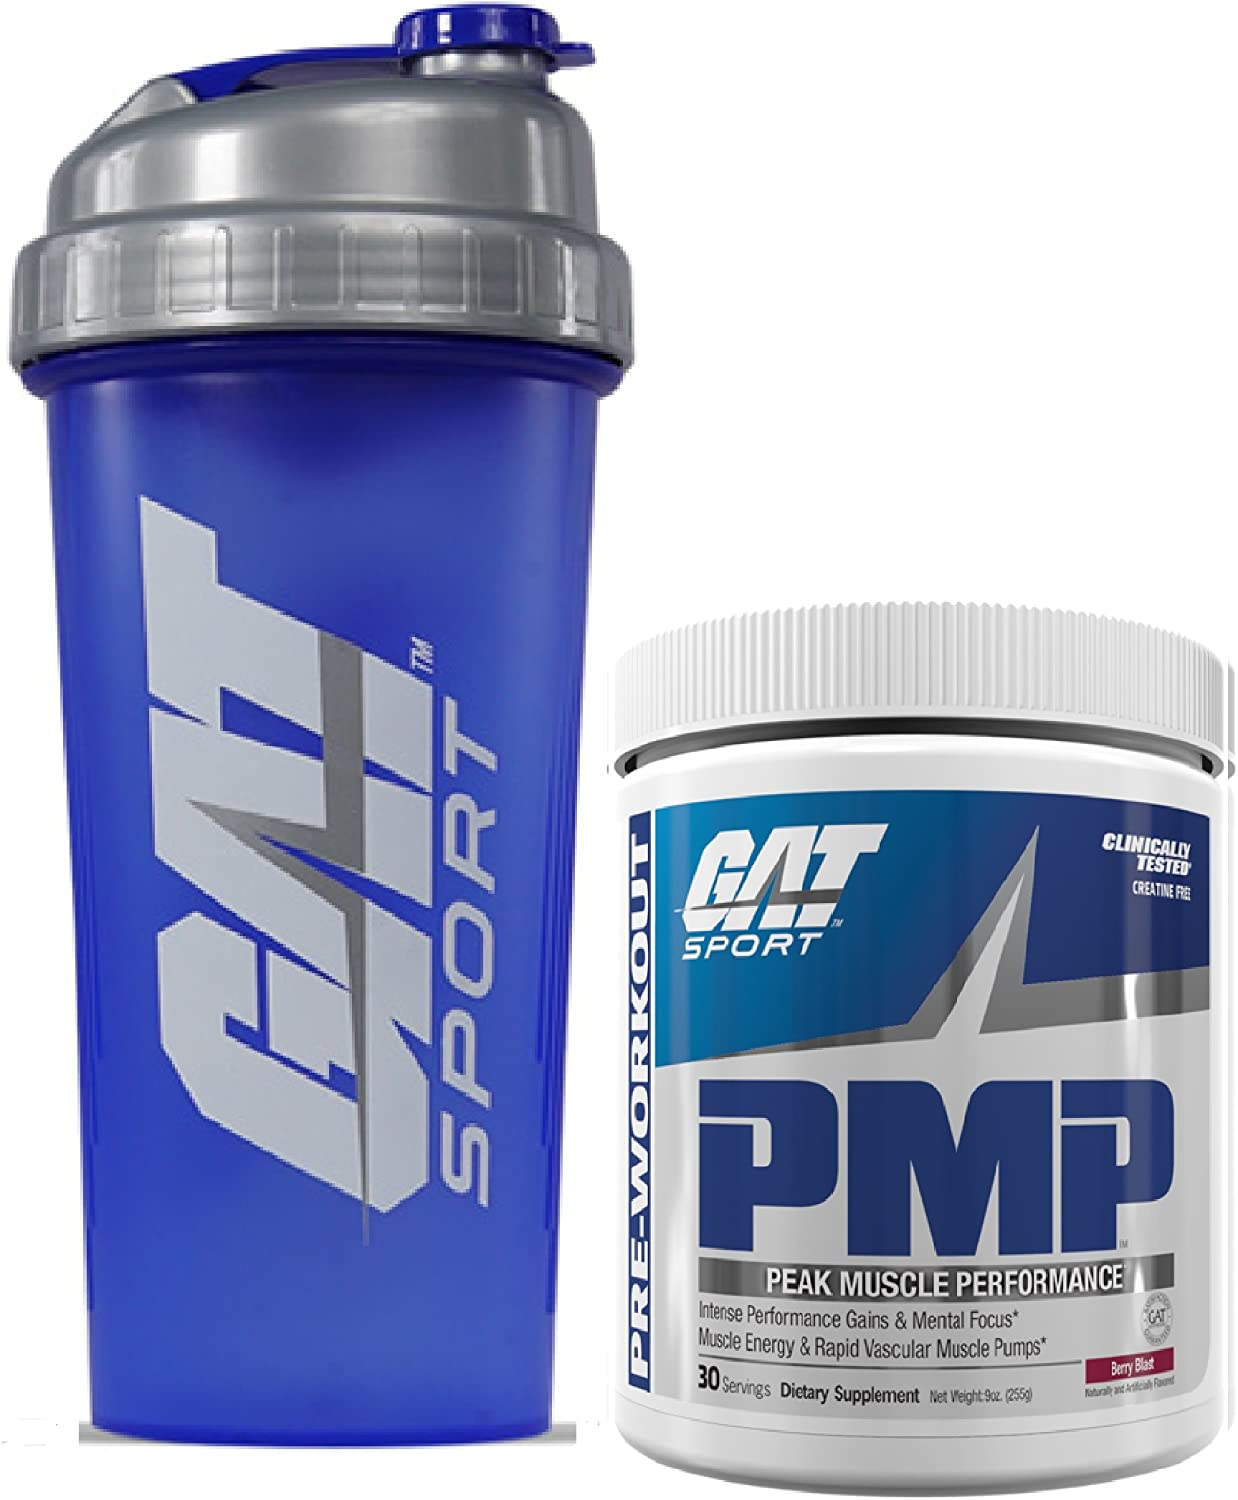 GAT PMP Peak Muscle Performance Pre-Workout Powder, 9 oz 30 svgs with Bonus GAT Shaker Bottle Berry Blast